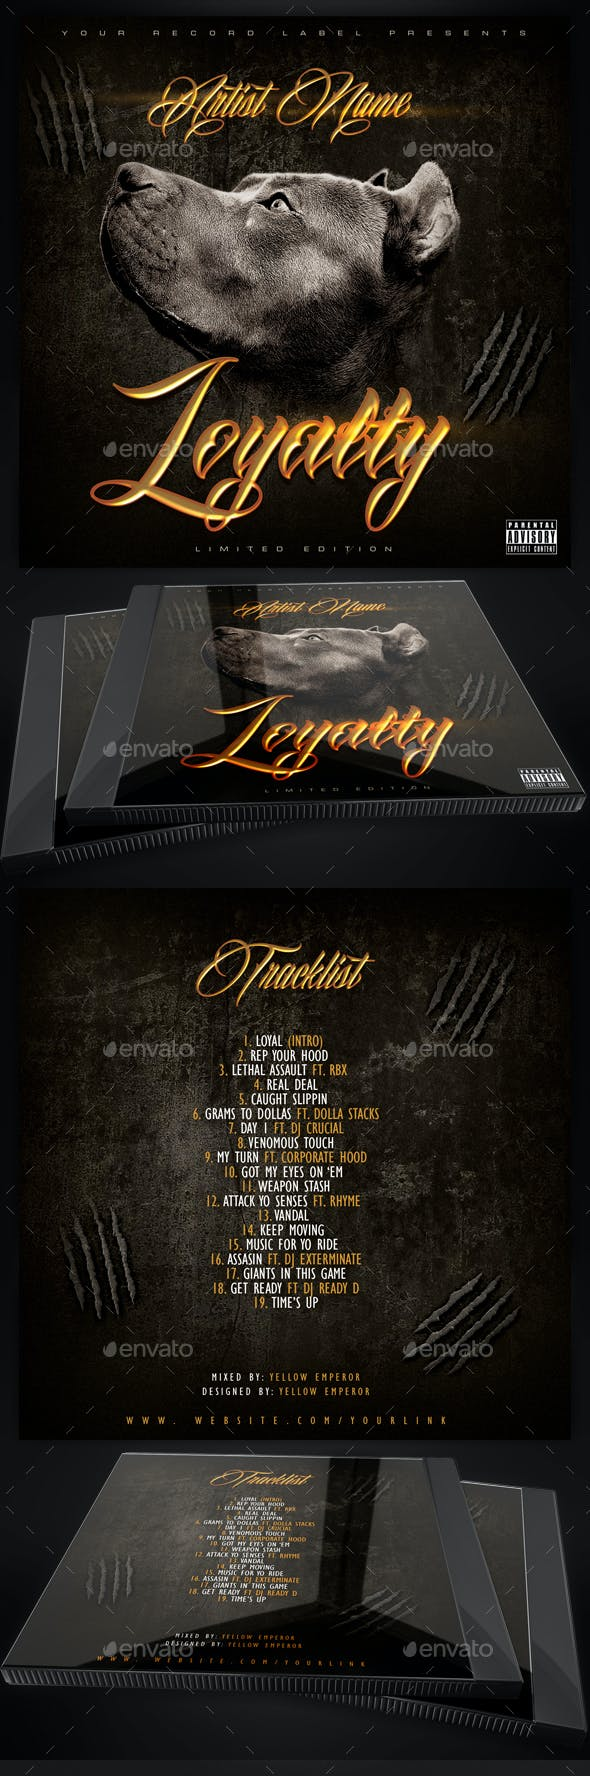 loyalty mixtape cd cover template by yellow emperor graphicriver